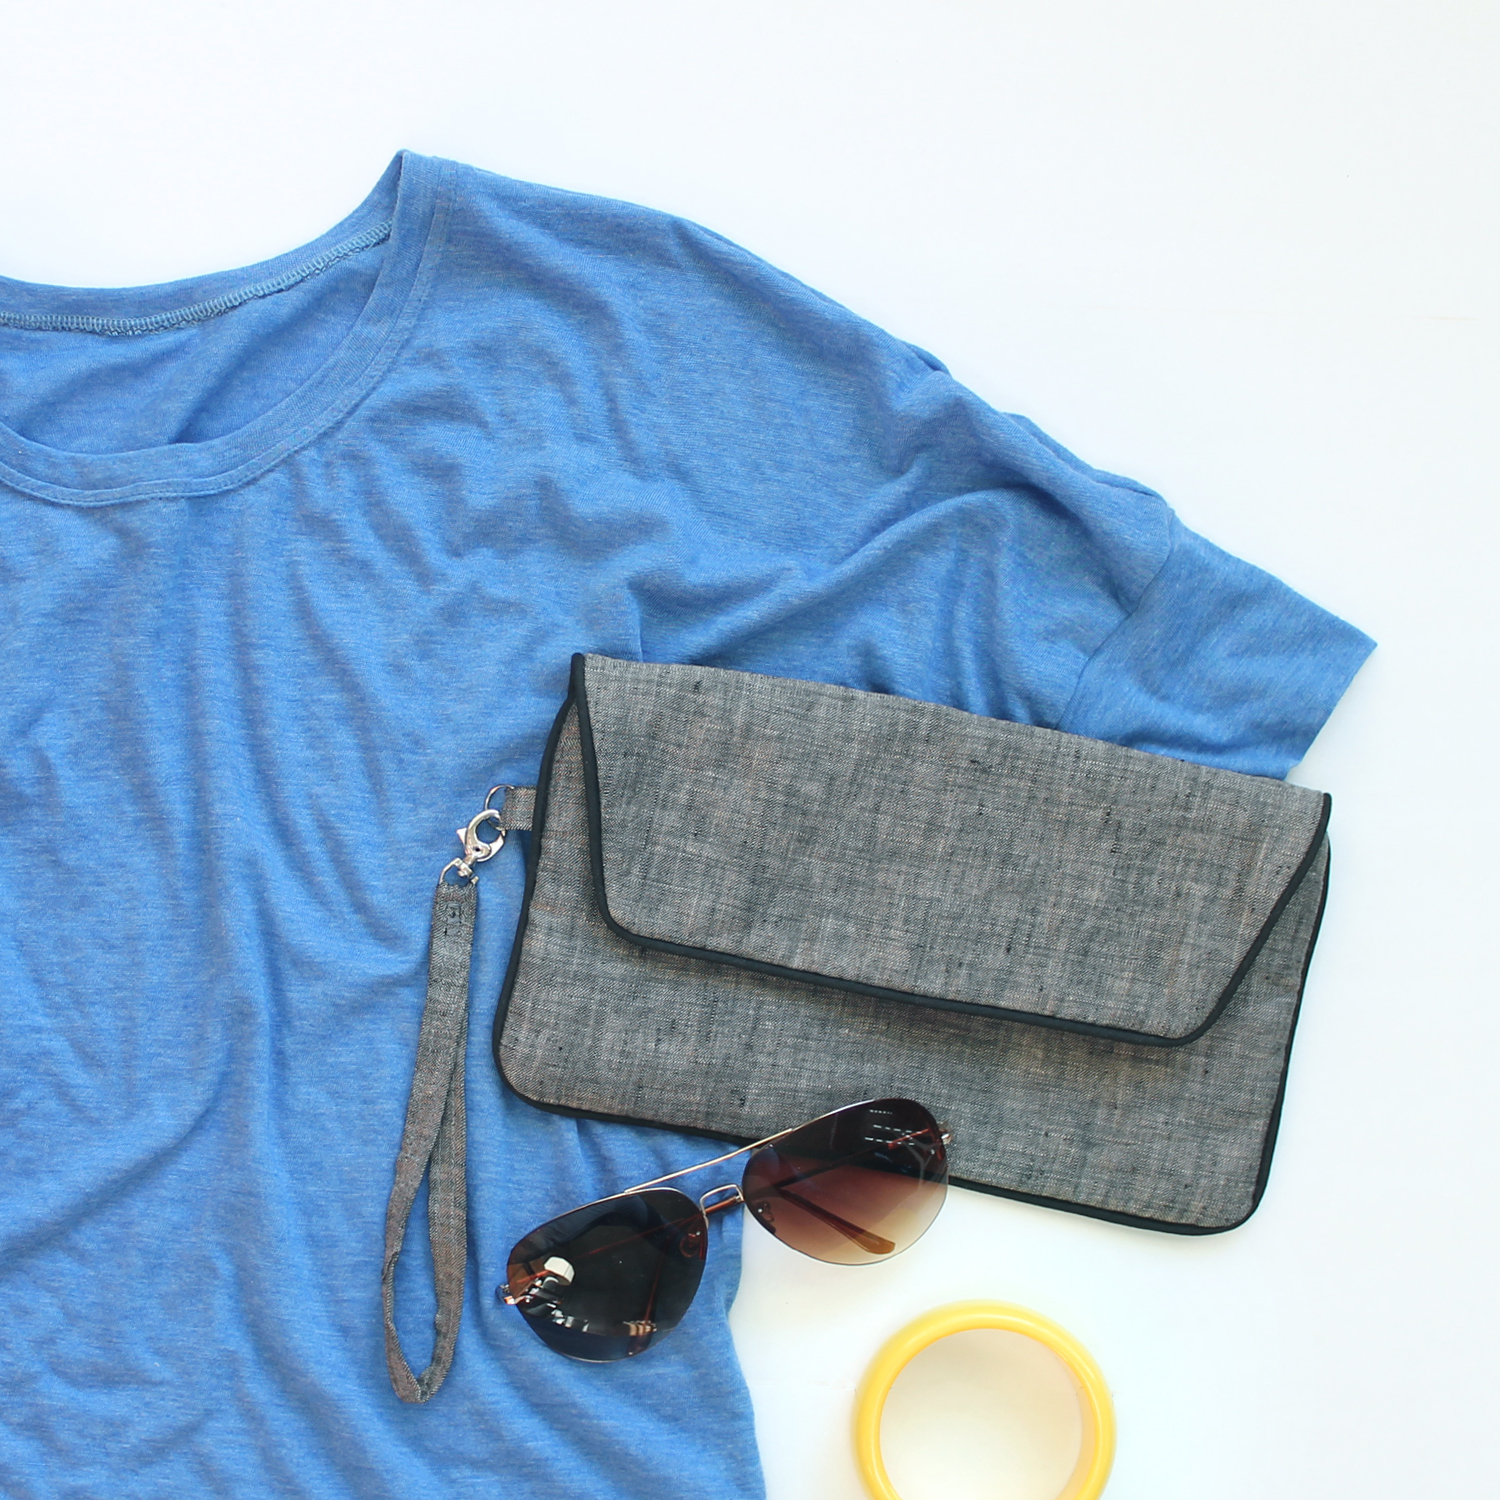 Indiesew Spring Collection –Seafarer Top and Envelope Clutch